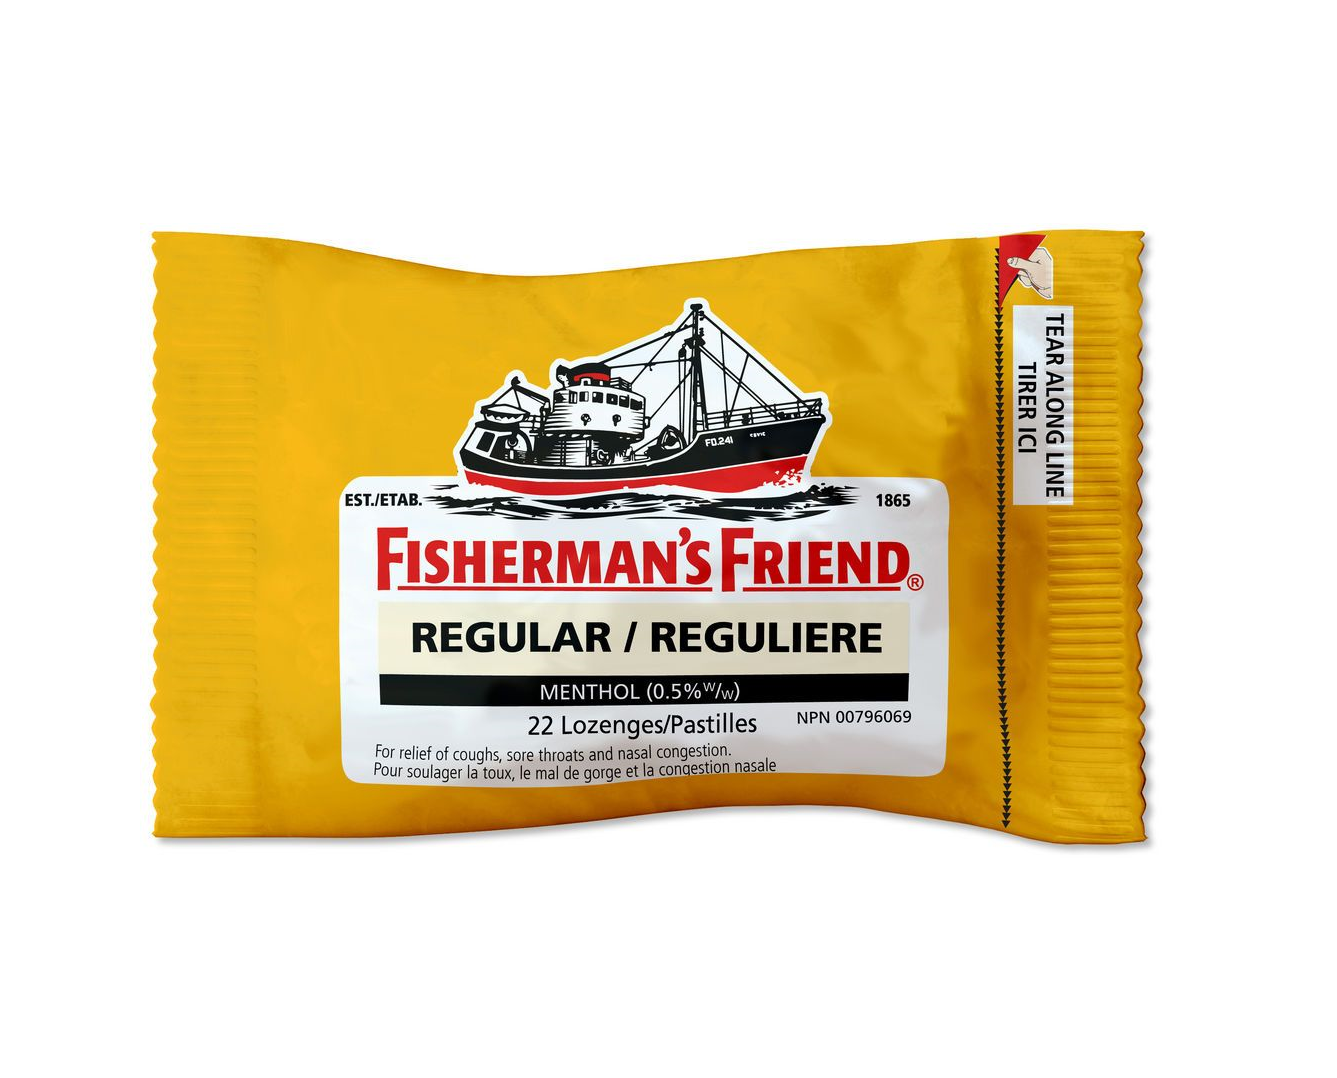 Fisherman's Friend Regular 22 Lozenges